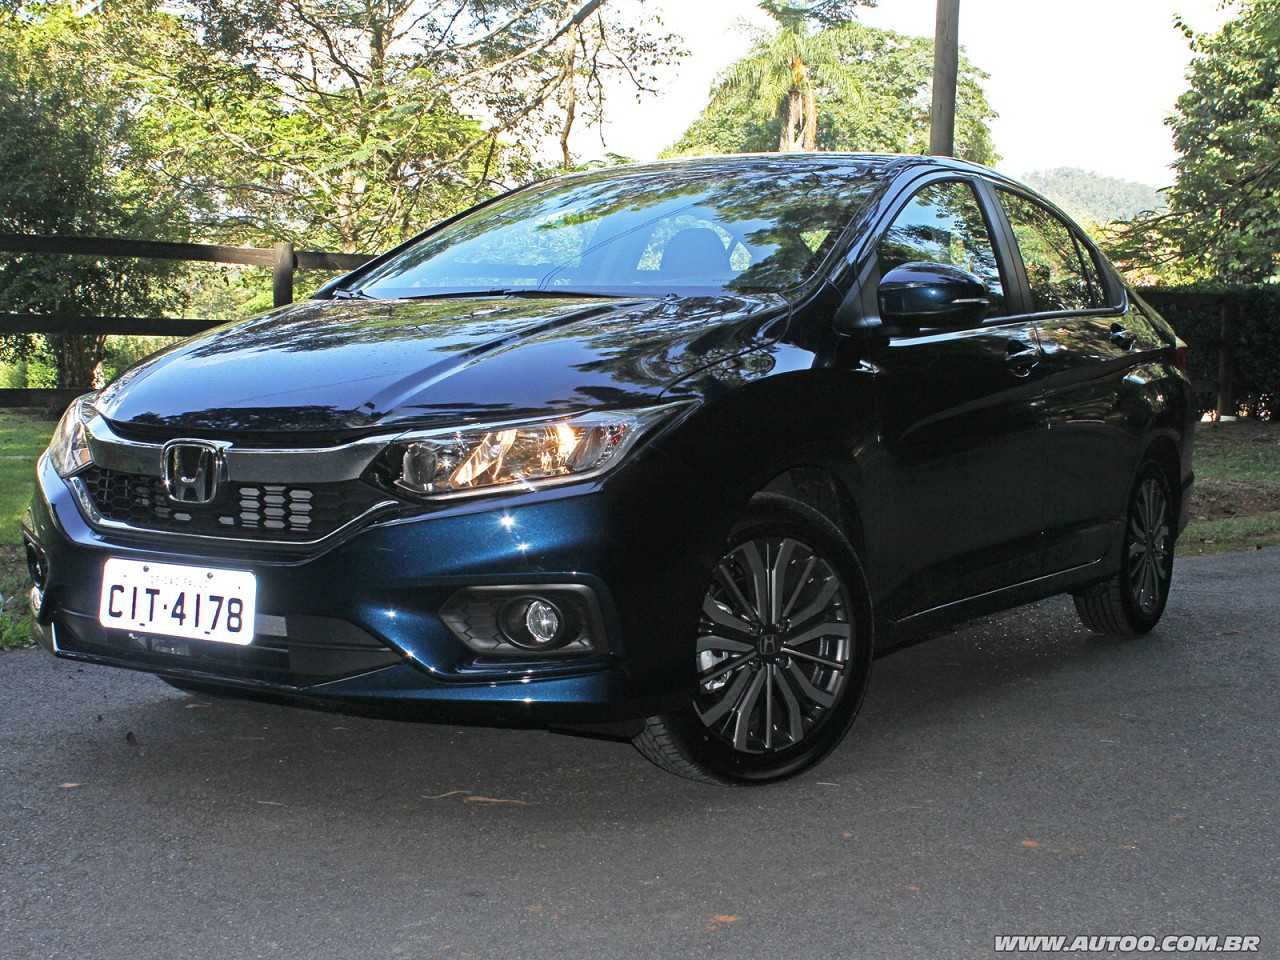 Honda City 2018 - ângulo frontal